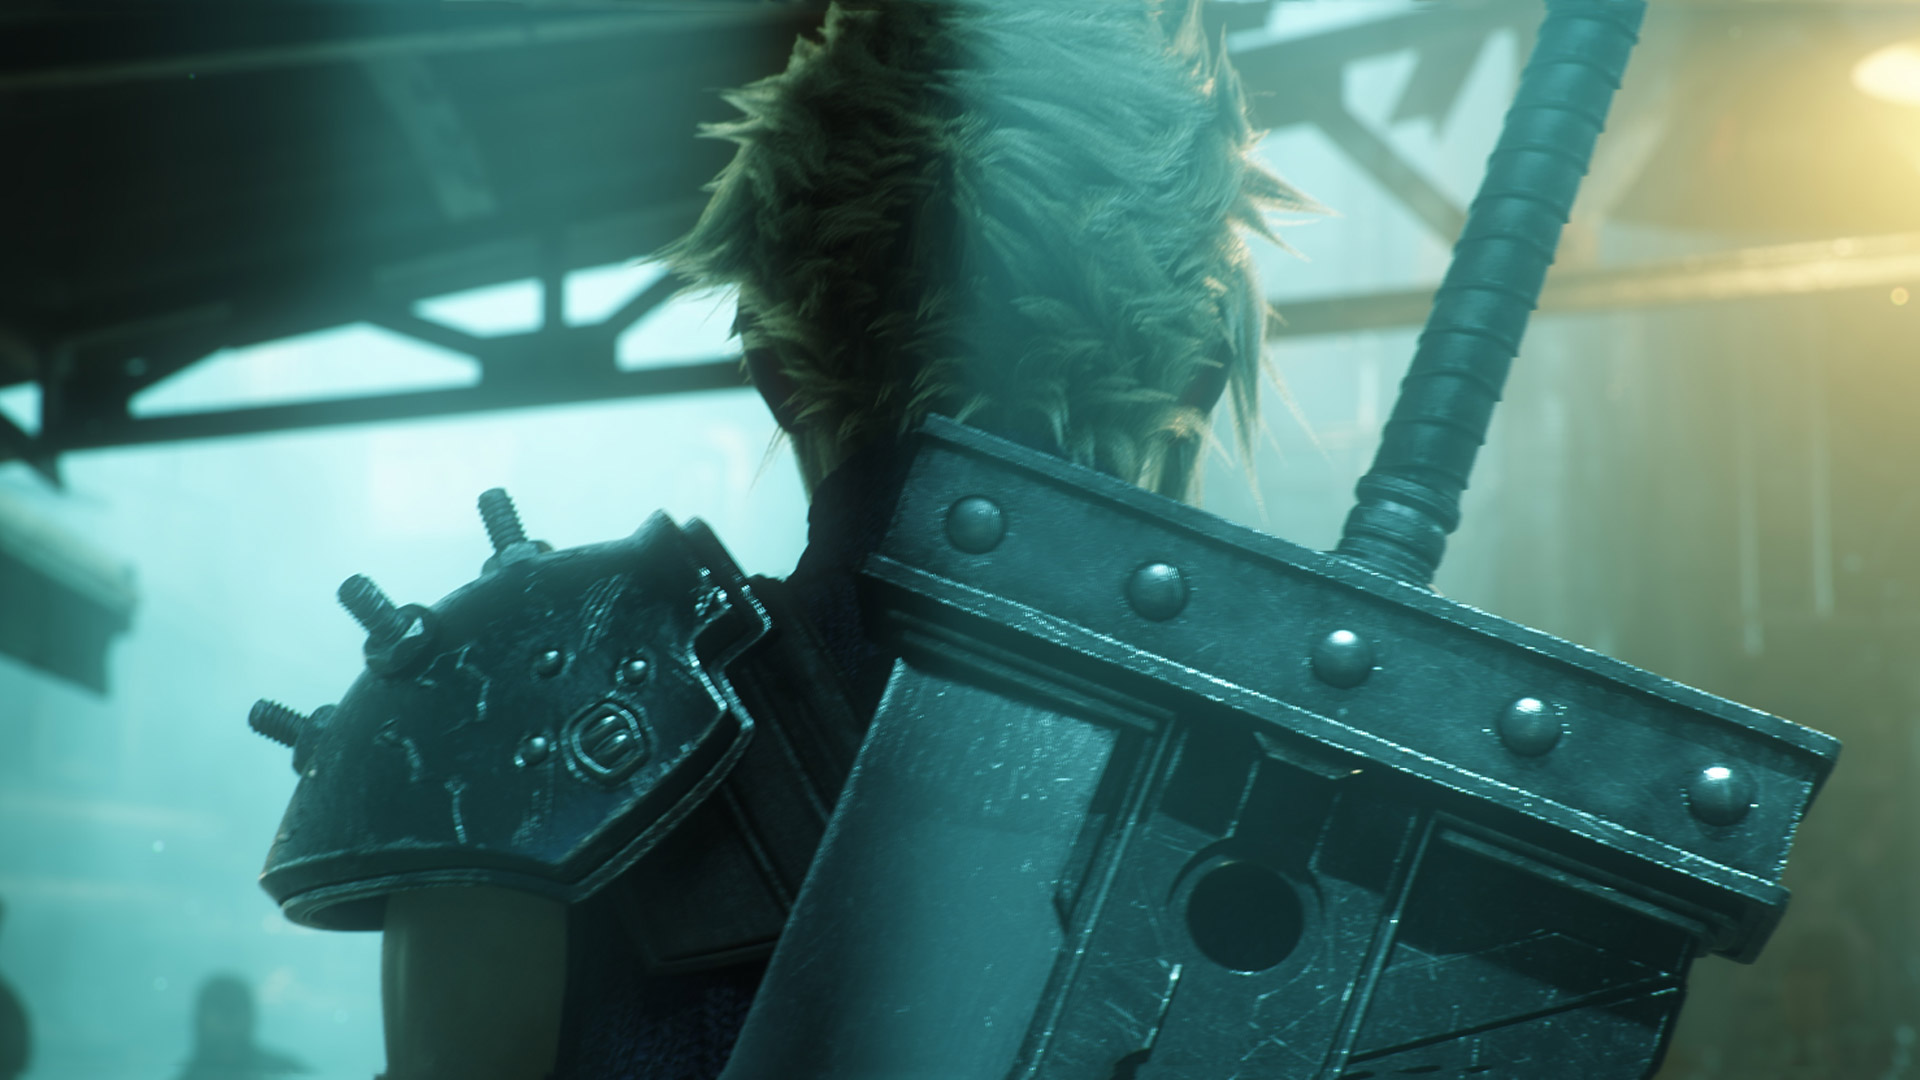 Final Fantasy 7 Remake Fondo De Pantalla Hd Fondo De